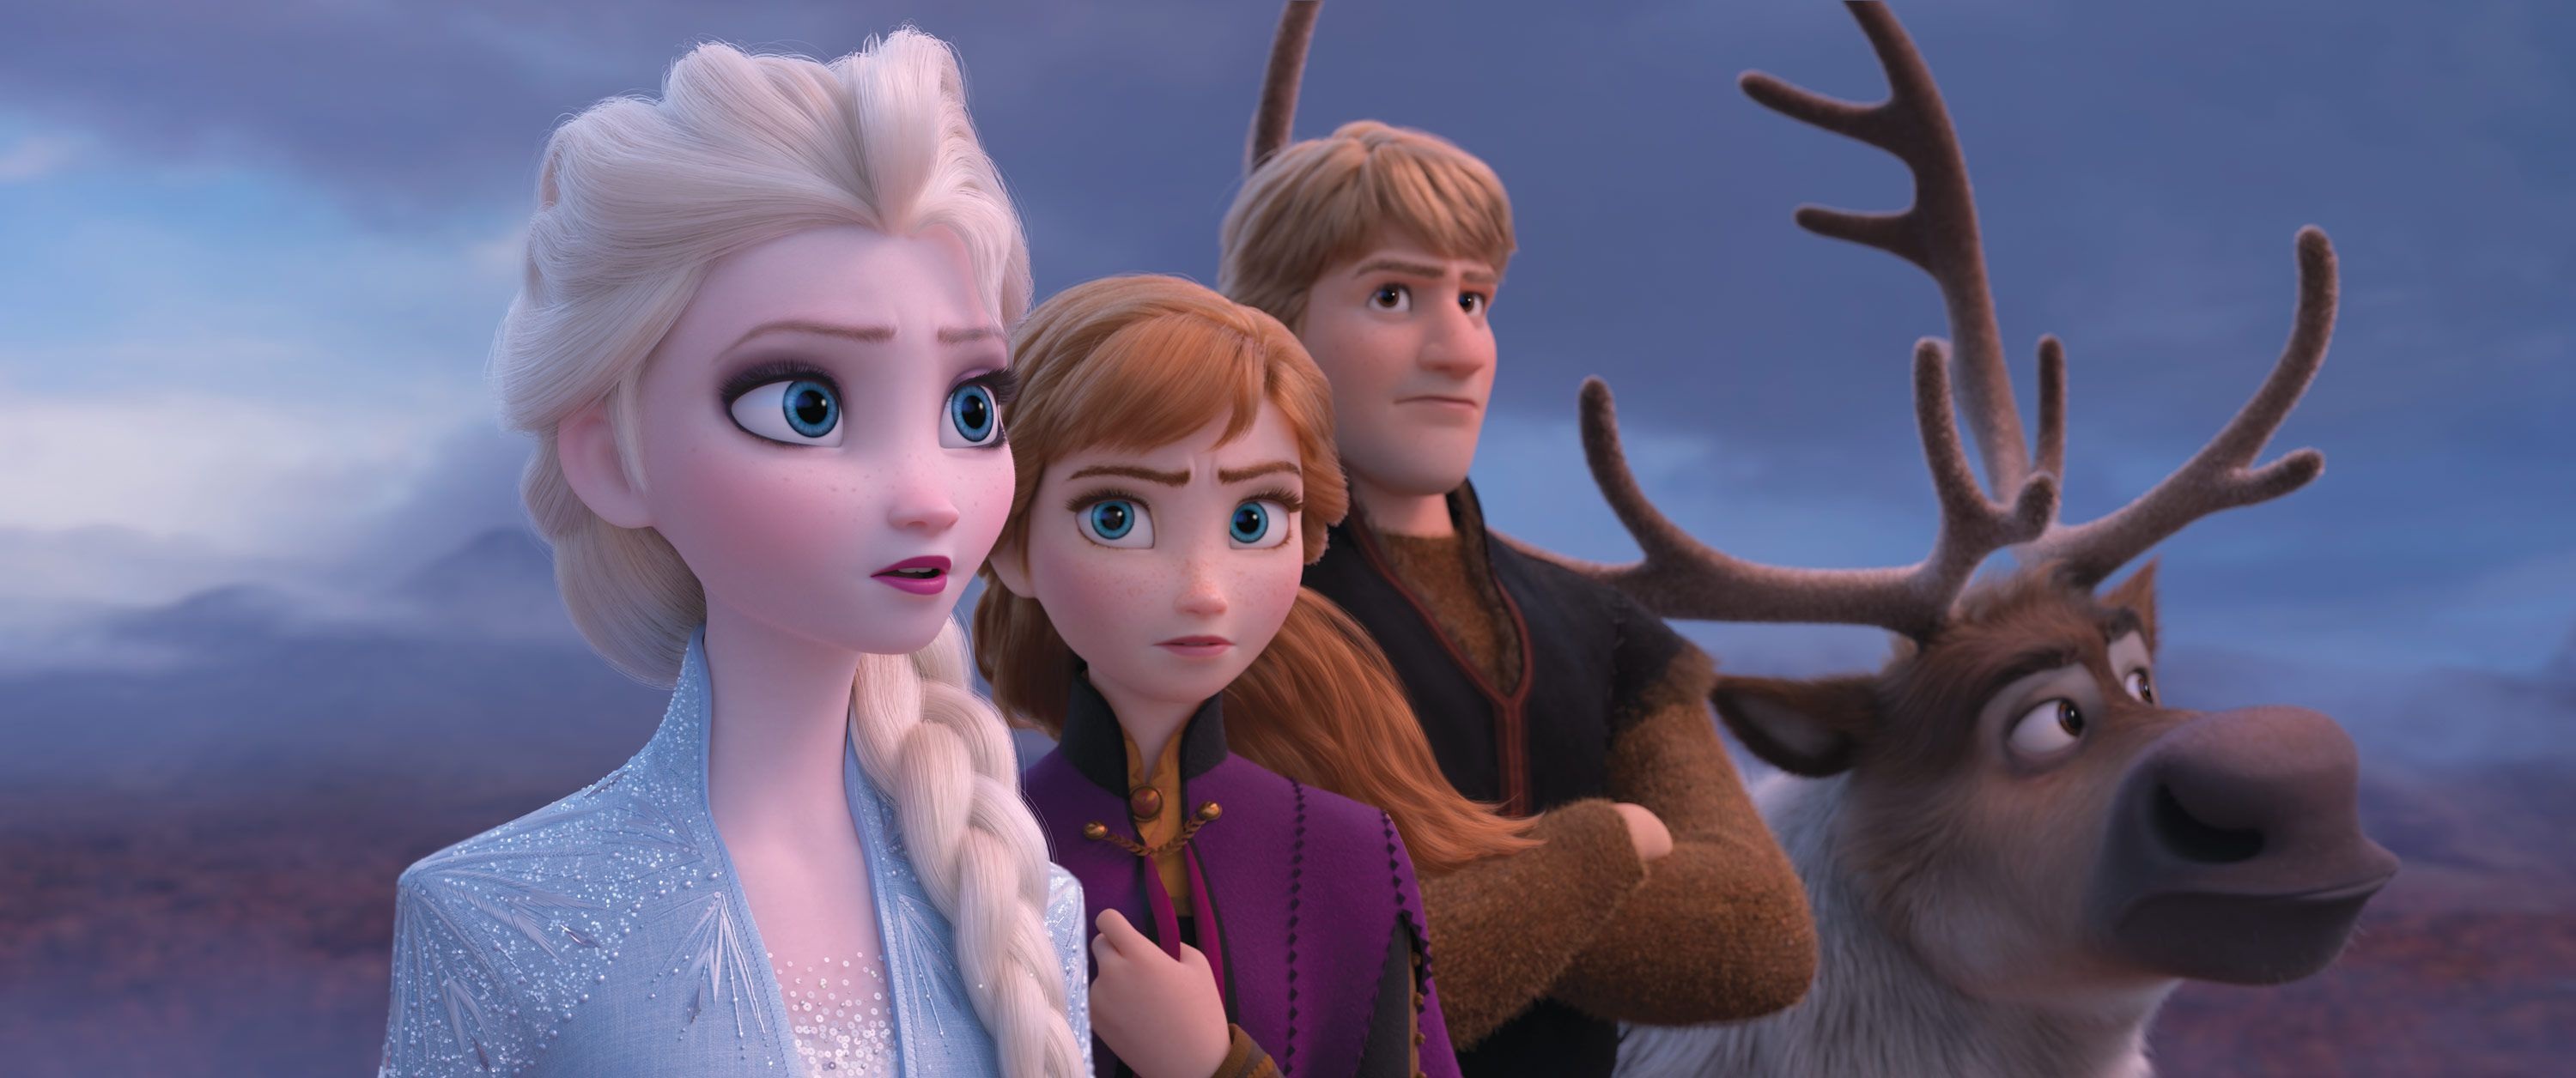 Frozen 2 Release Date, Trailer And Predictions – What to Expect From Sequel?